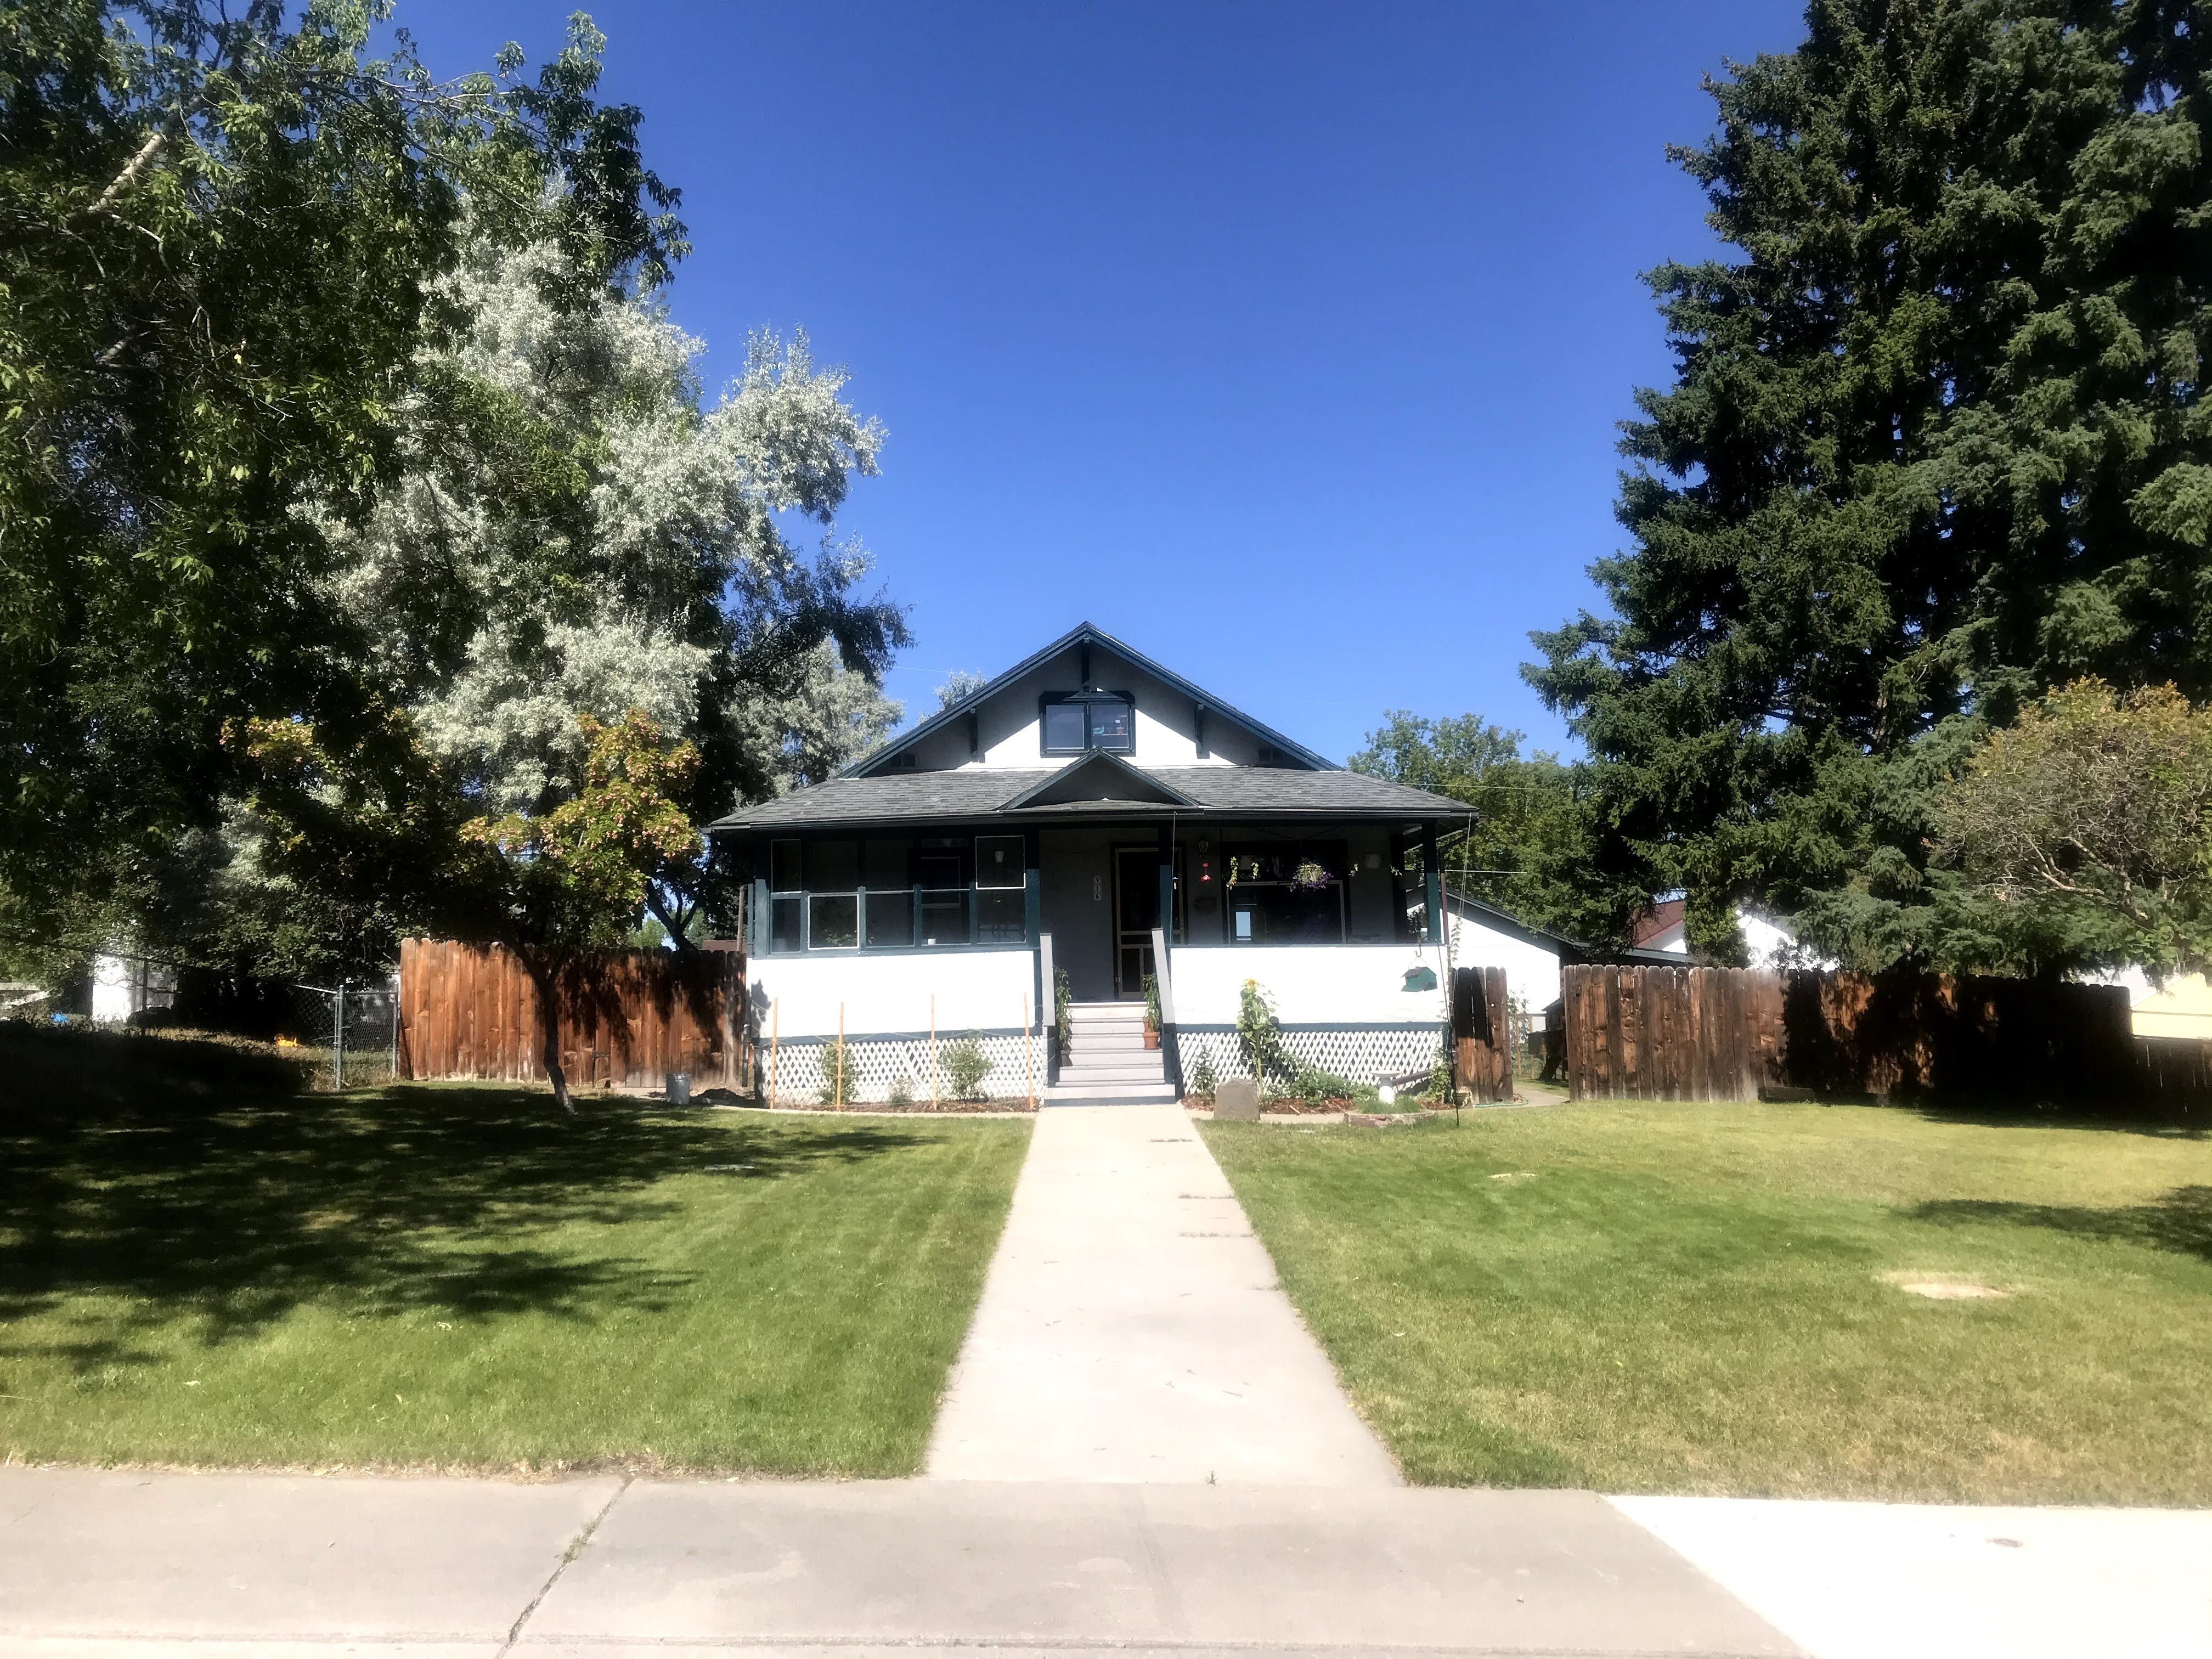 Stucco bungalow with large, empty front lawn and some small plantings.